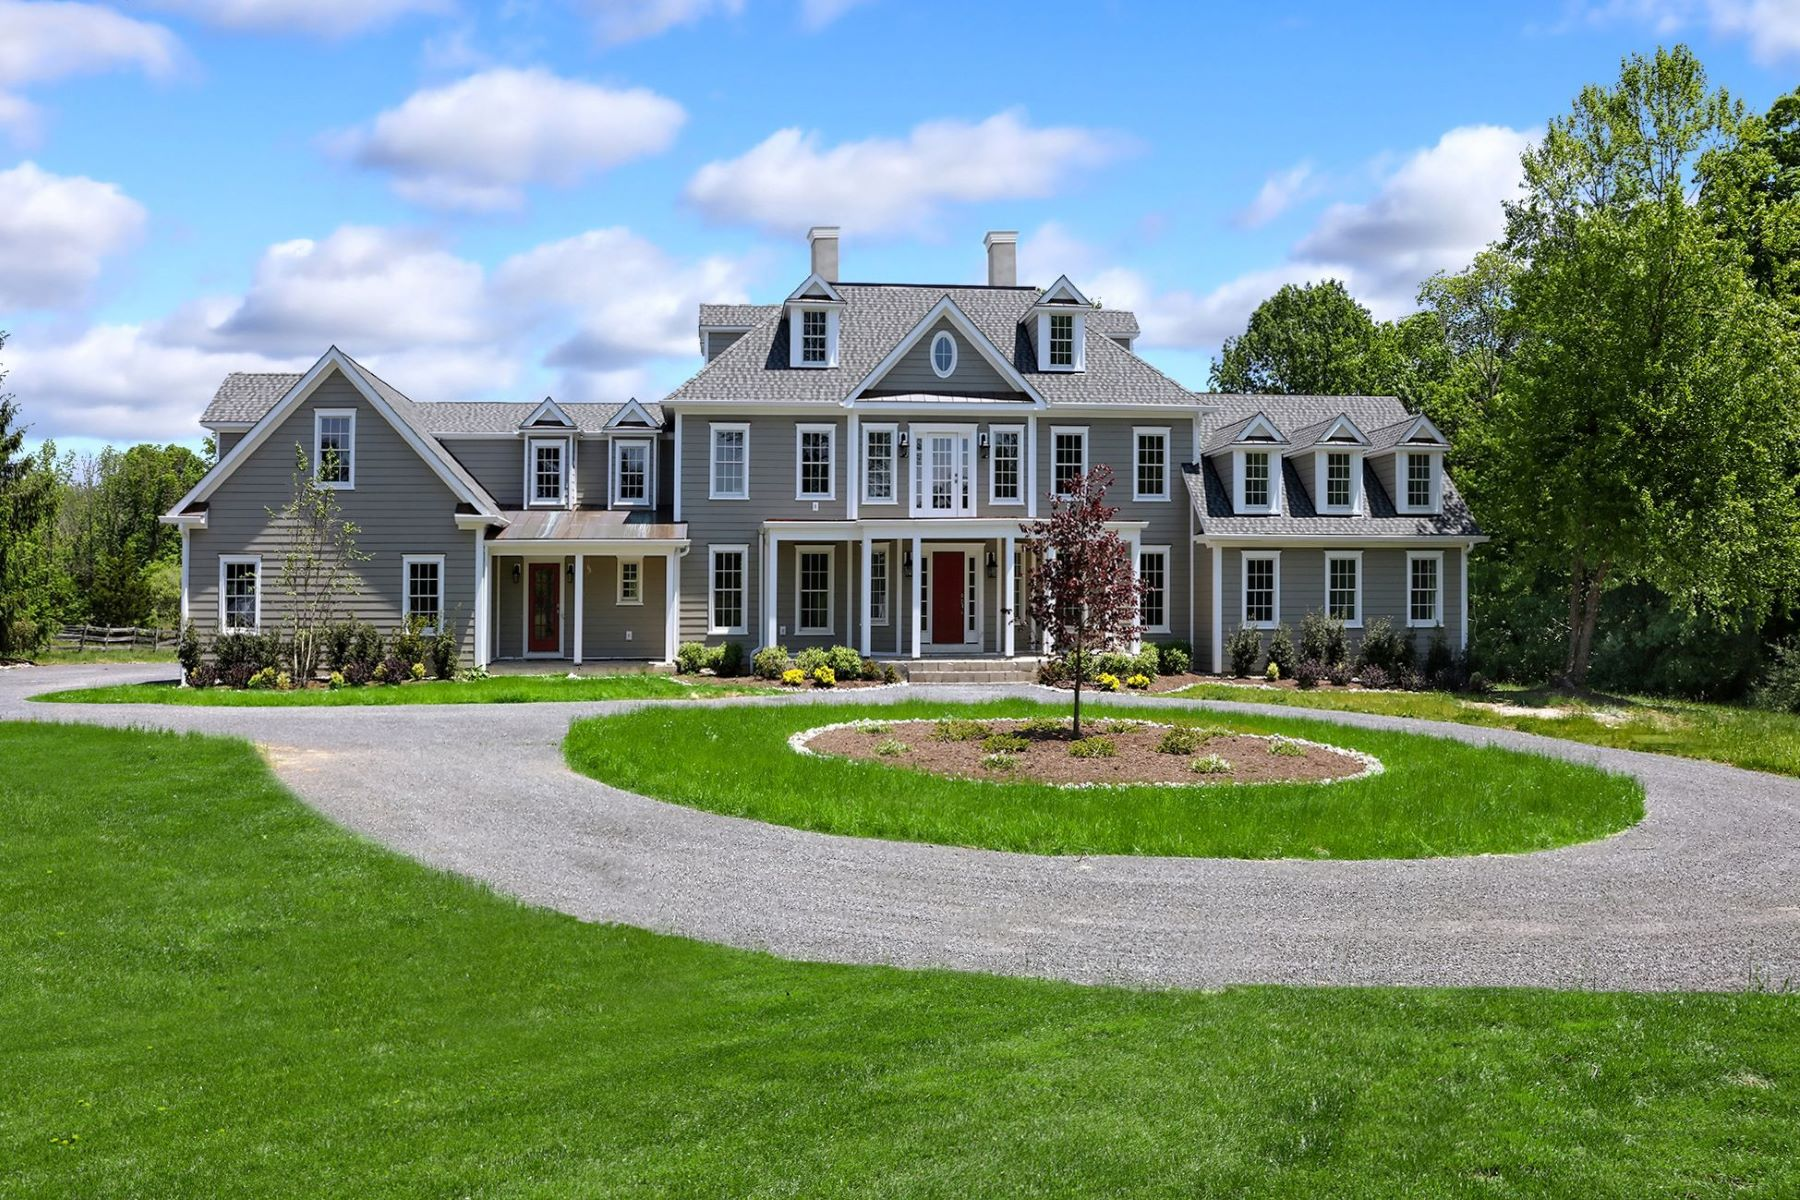 Every Amenity in this Spectacular Estate-Style Home 114 Federal Twist Road, Stockton, New Jersey 08559 Förenta staterna